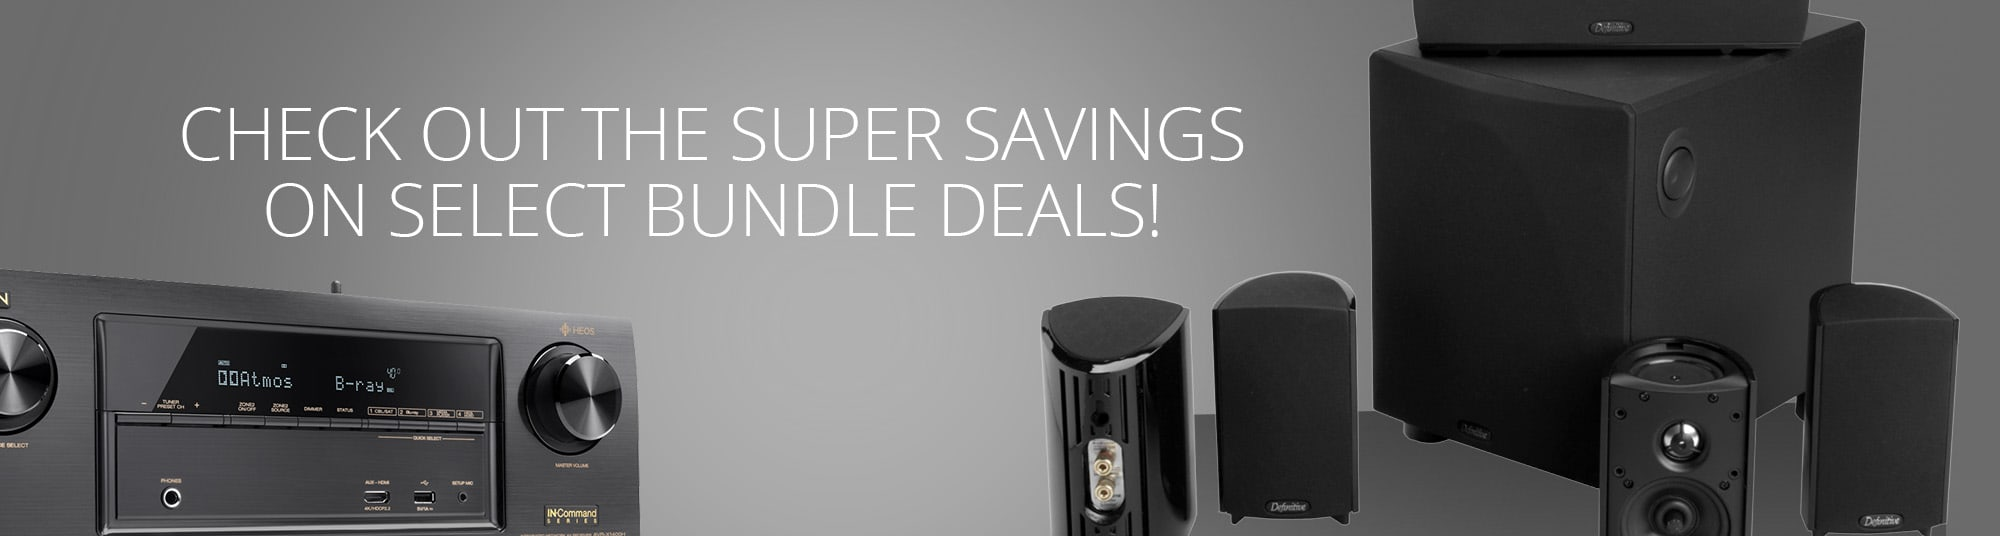 Check out the Super Savings on Select bundle deals!